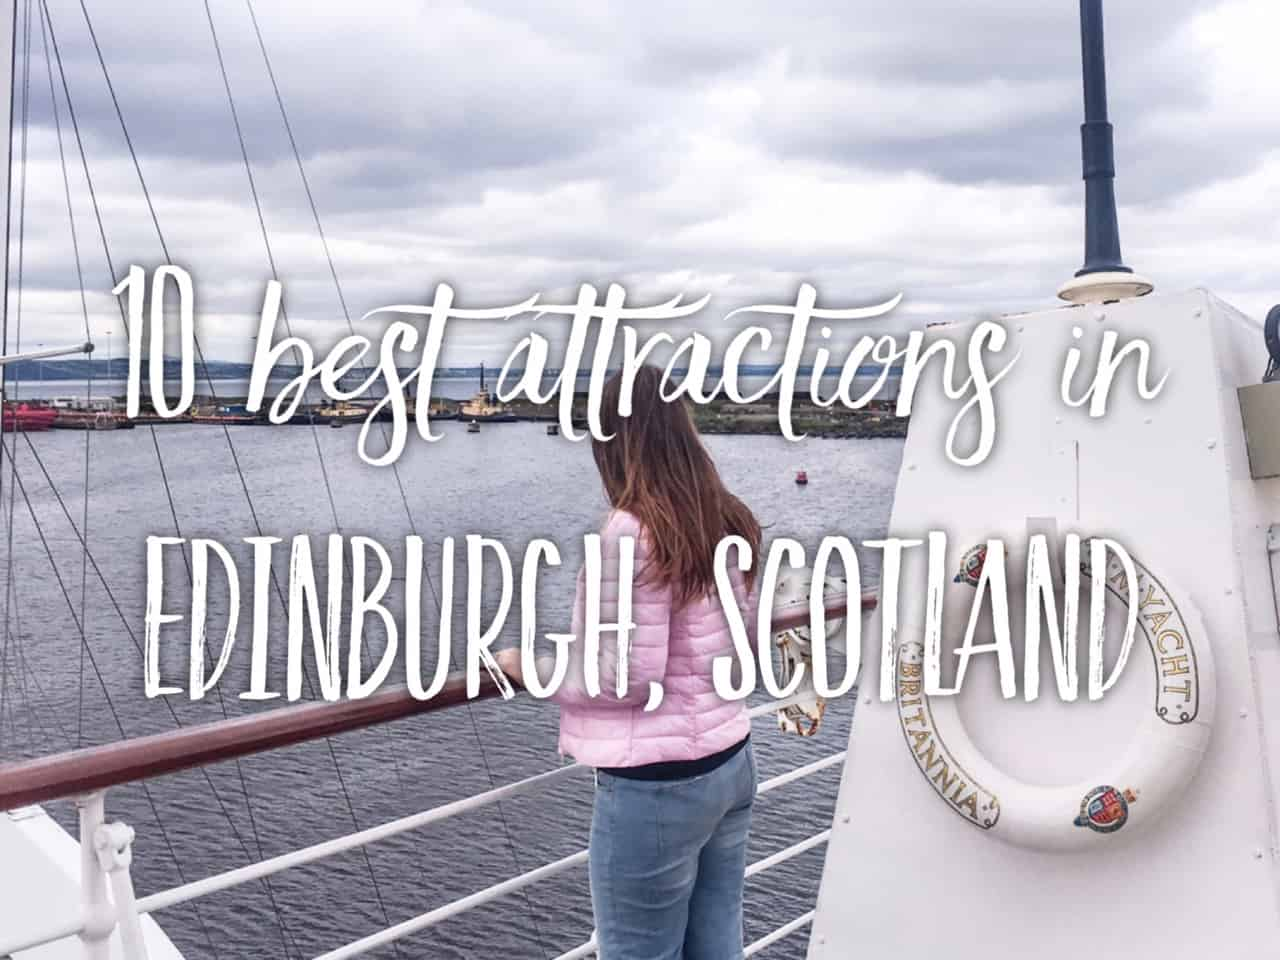 10 best attractions in Edinburgh, Scotland | We tried them all!